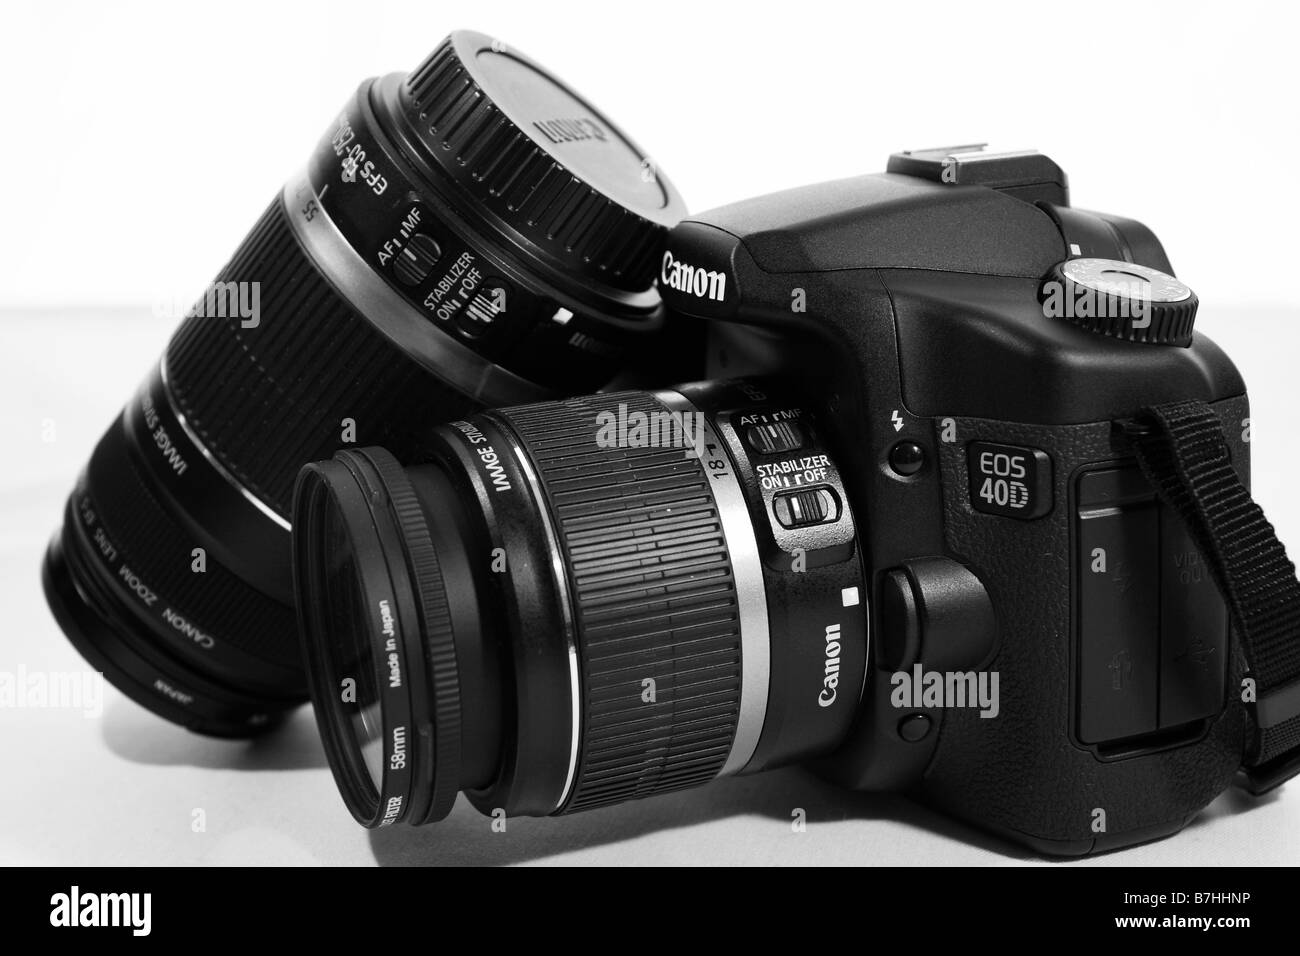 A close of photograph of a Canon 40D SLR Digital Professional Camera and Lens - Stock Image